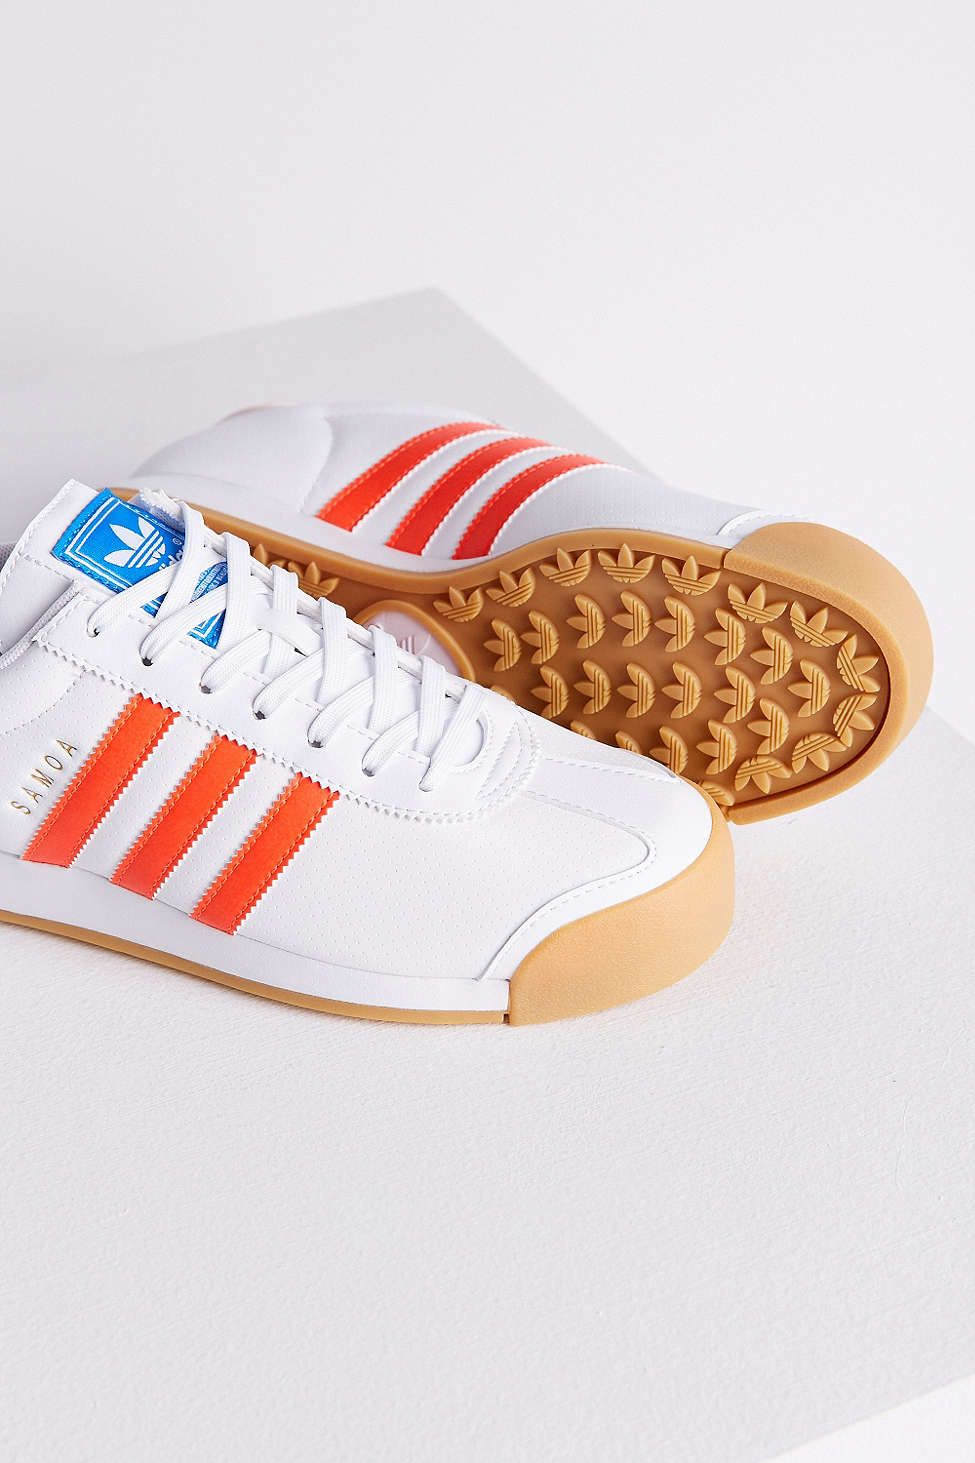 adidas Samoa Perforated Gum Sole Sneaker